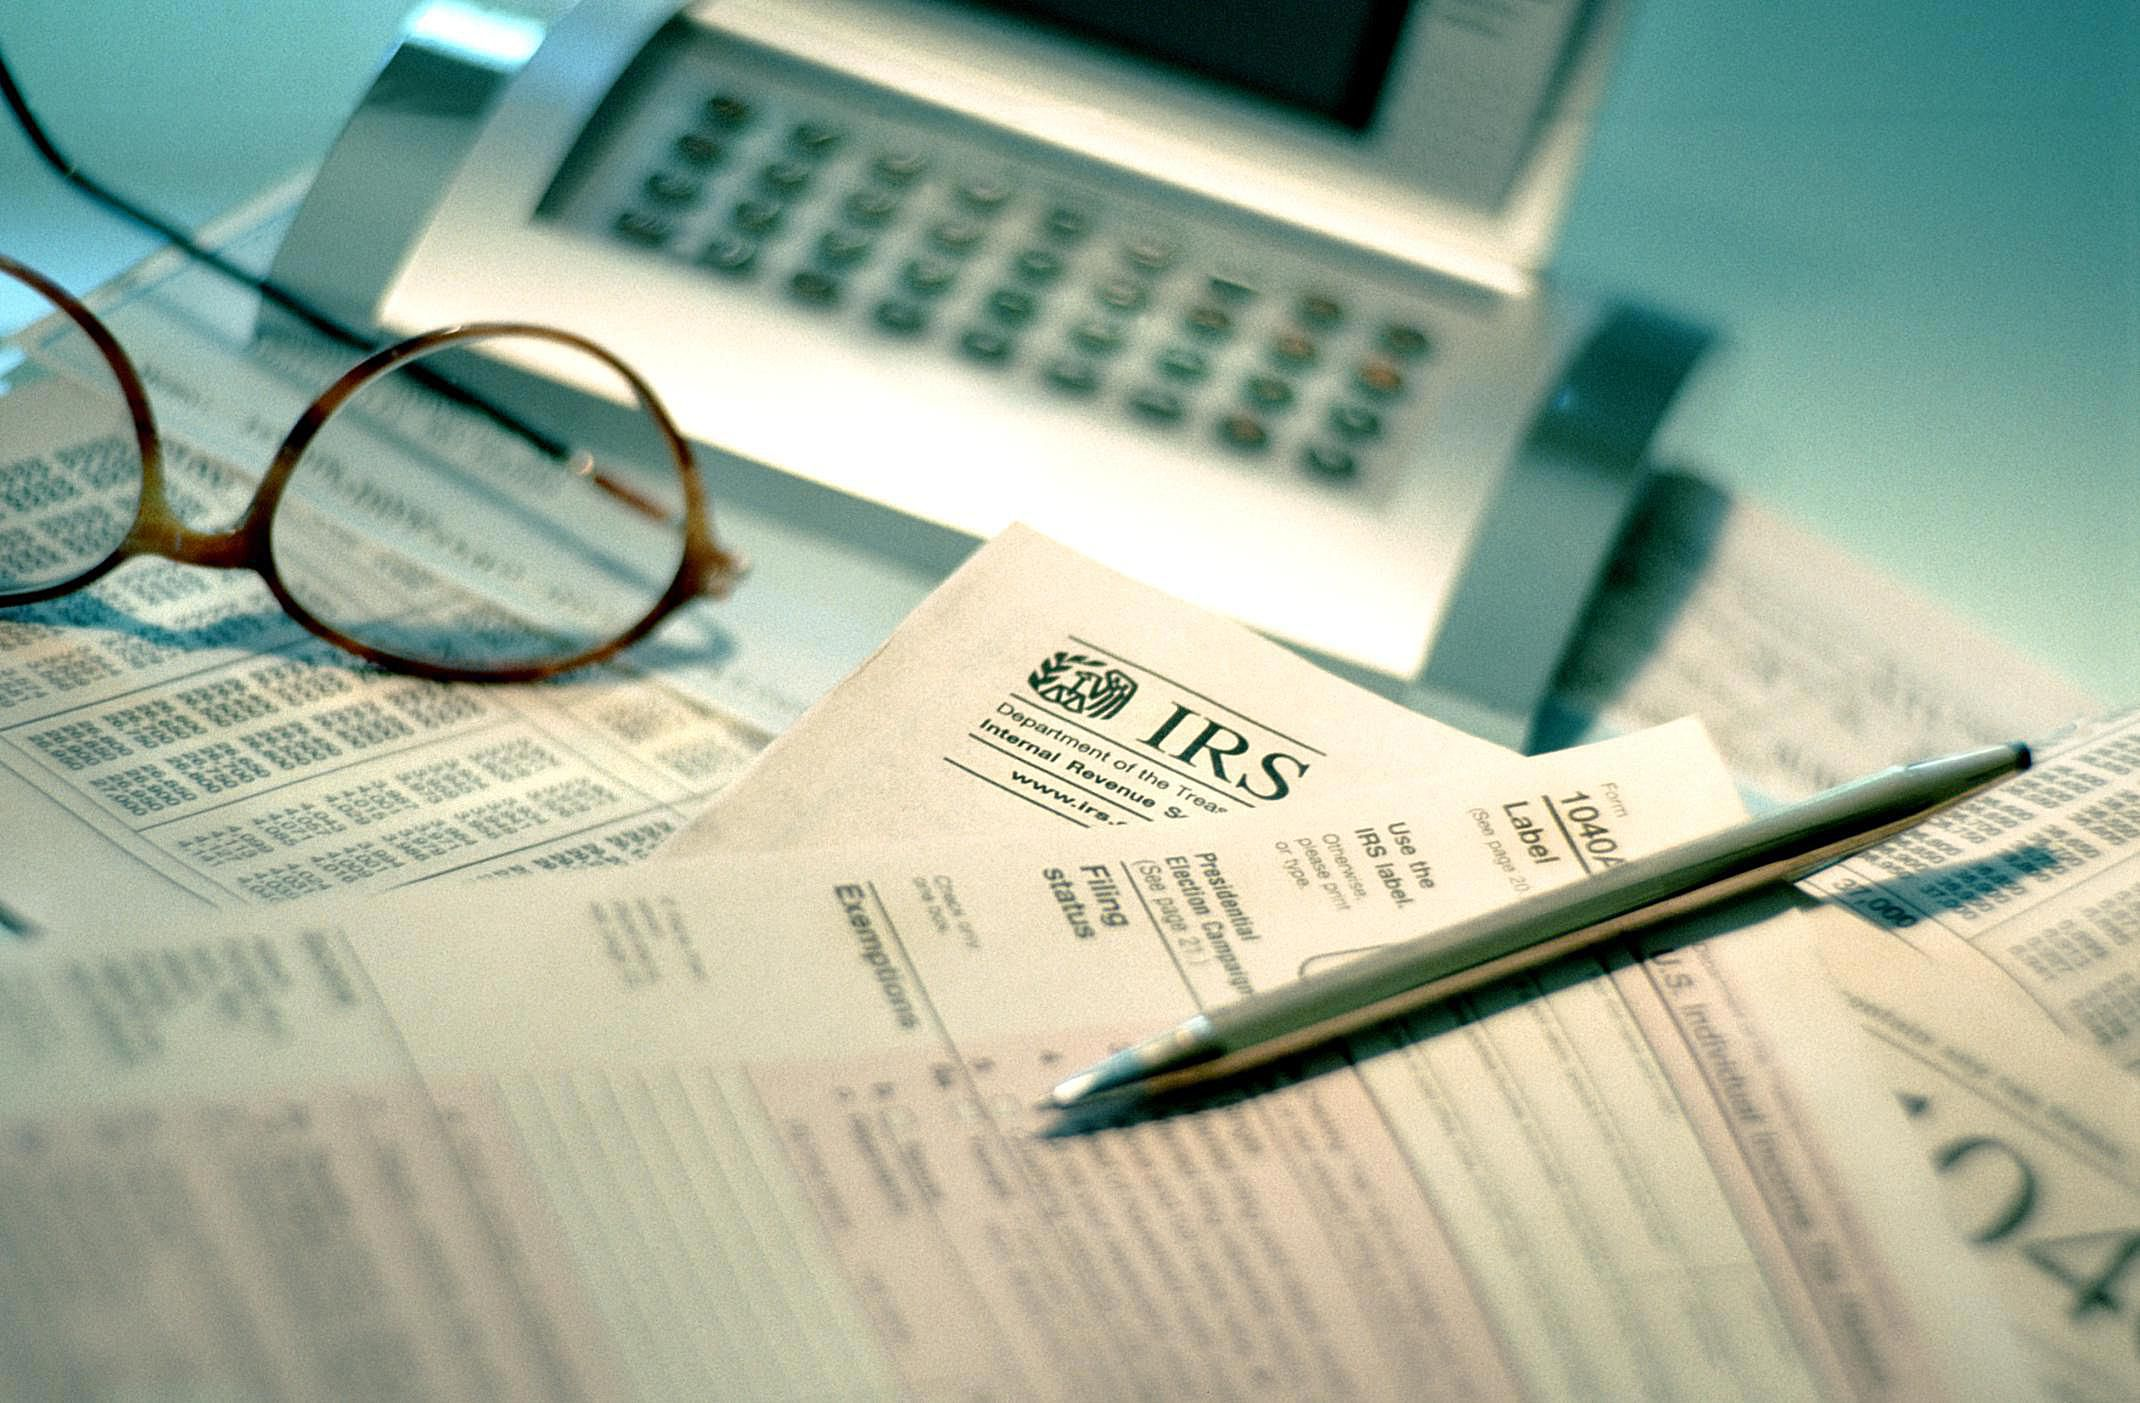 Filing an amended tax return using irs form 1040x falaconquin